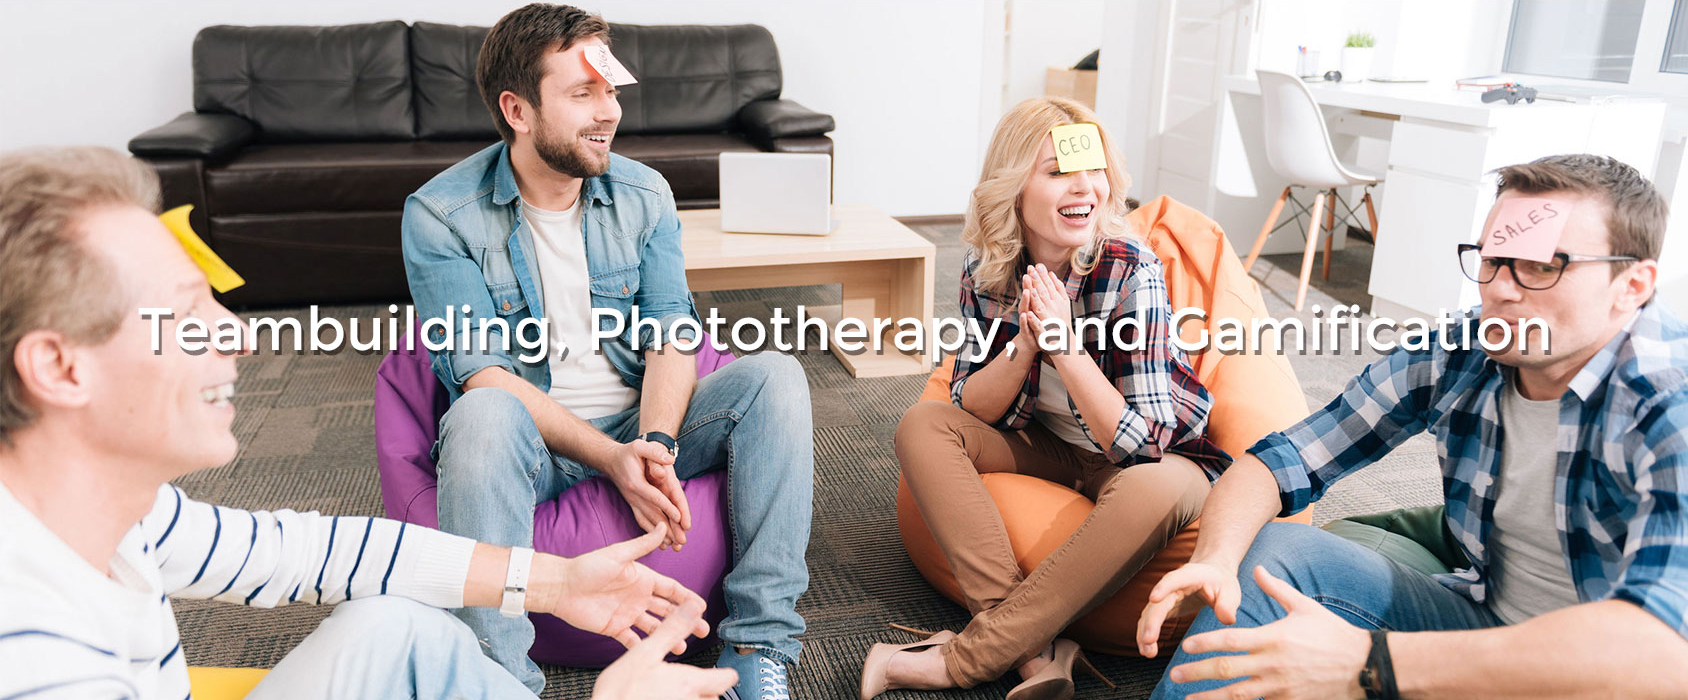 Teambuilding,-Phototherapy and Gamification